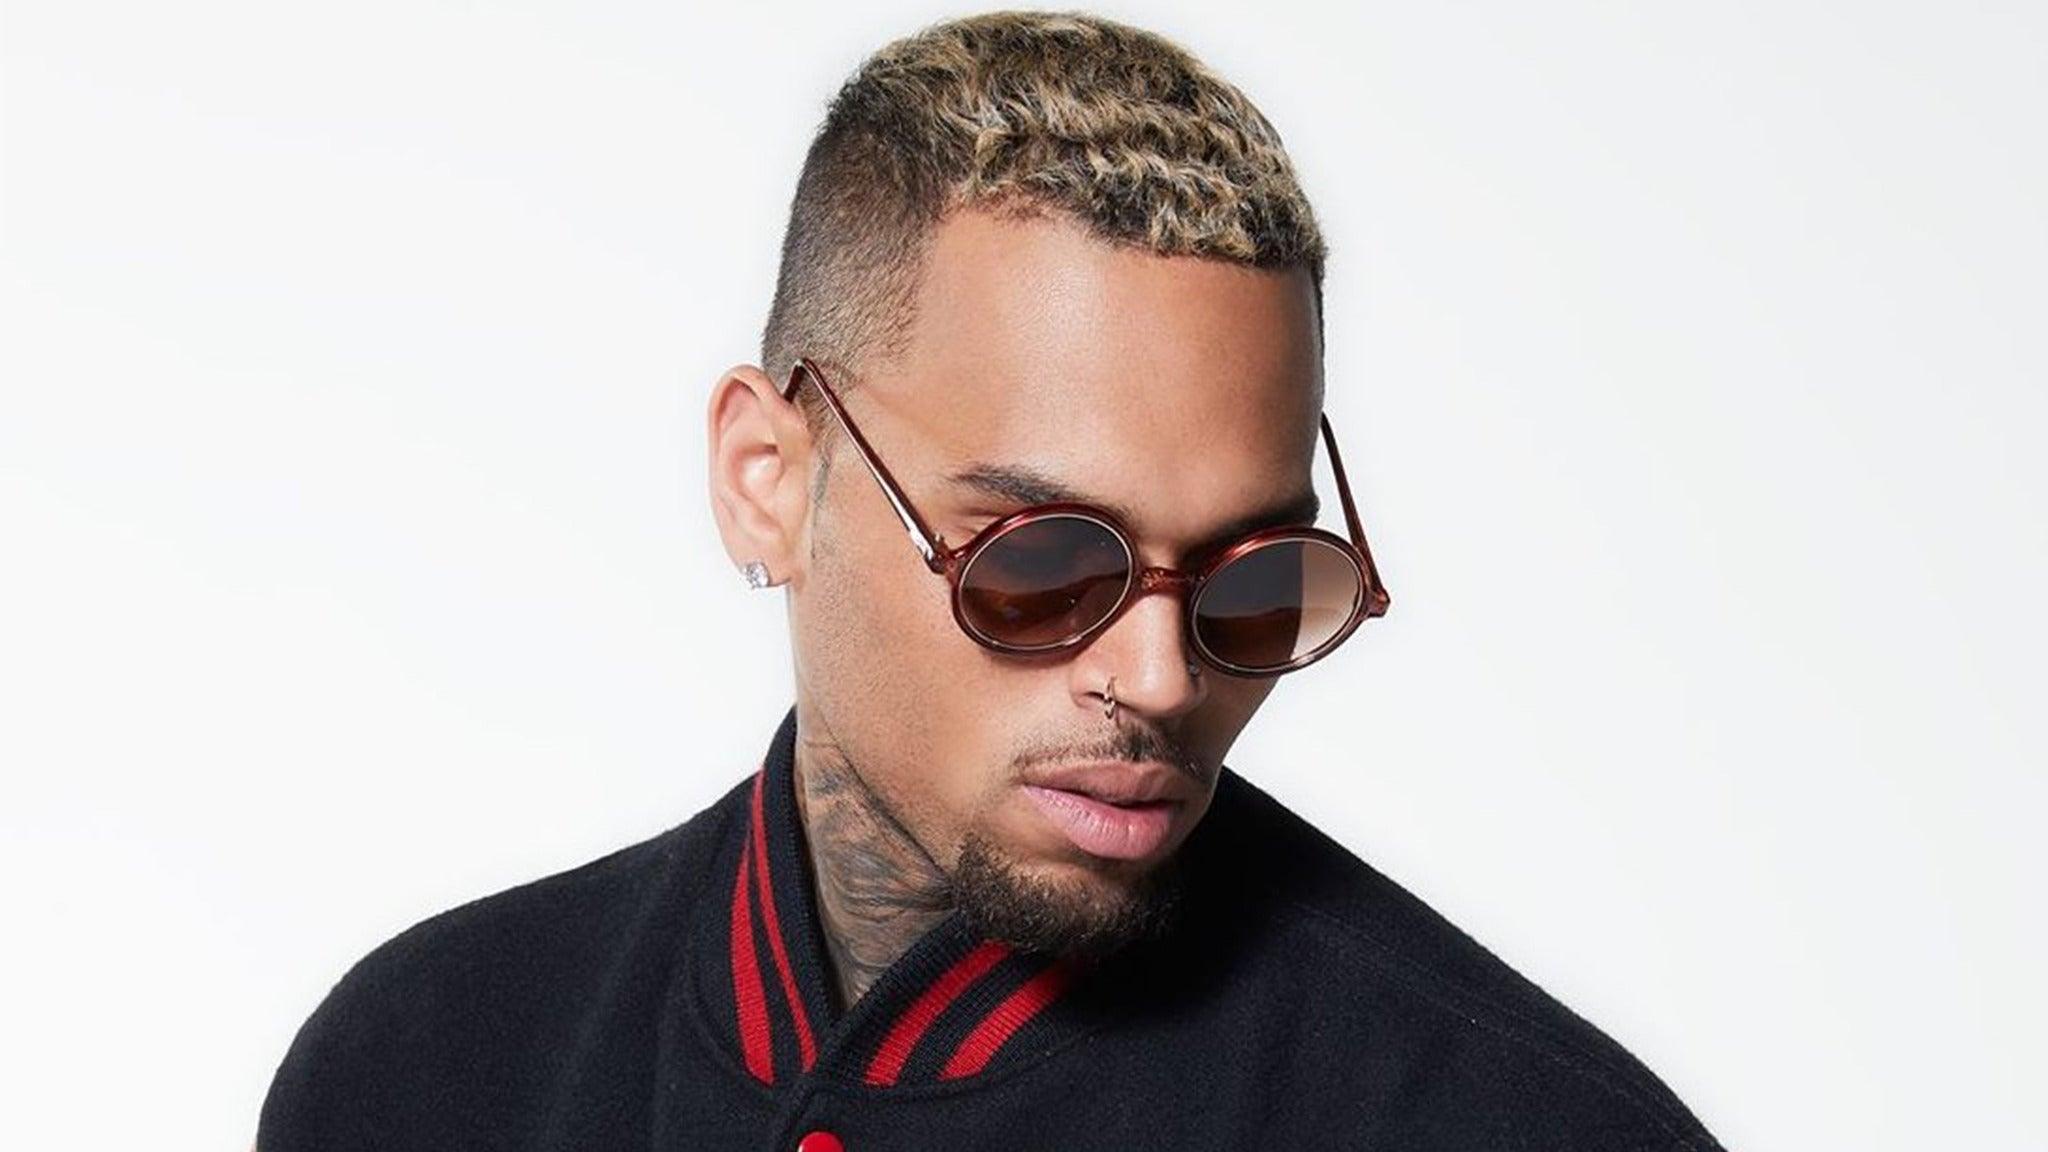 Chris Brown - Indigoat Tour 2019 at Amalie Arena